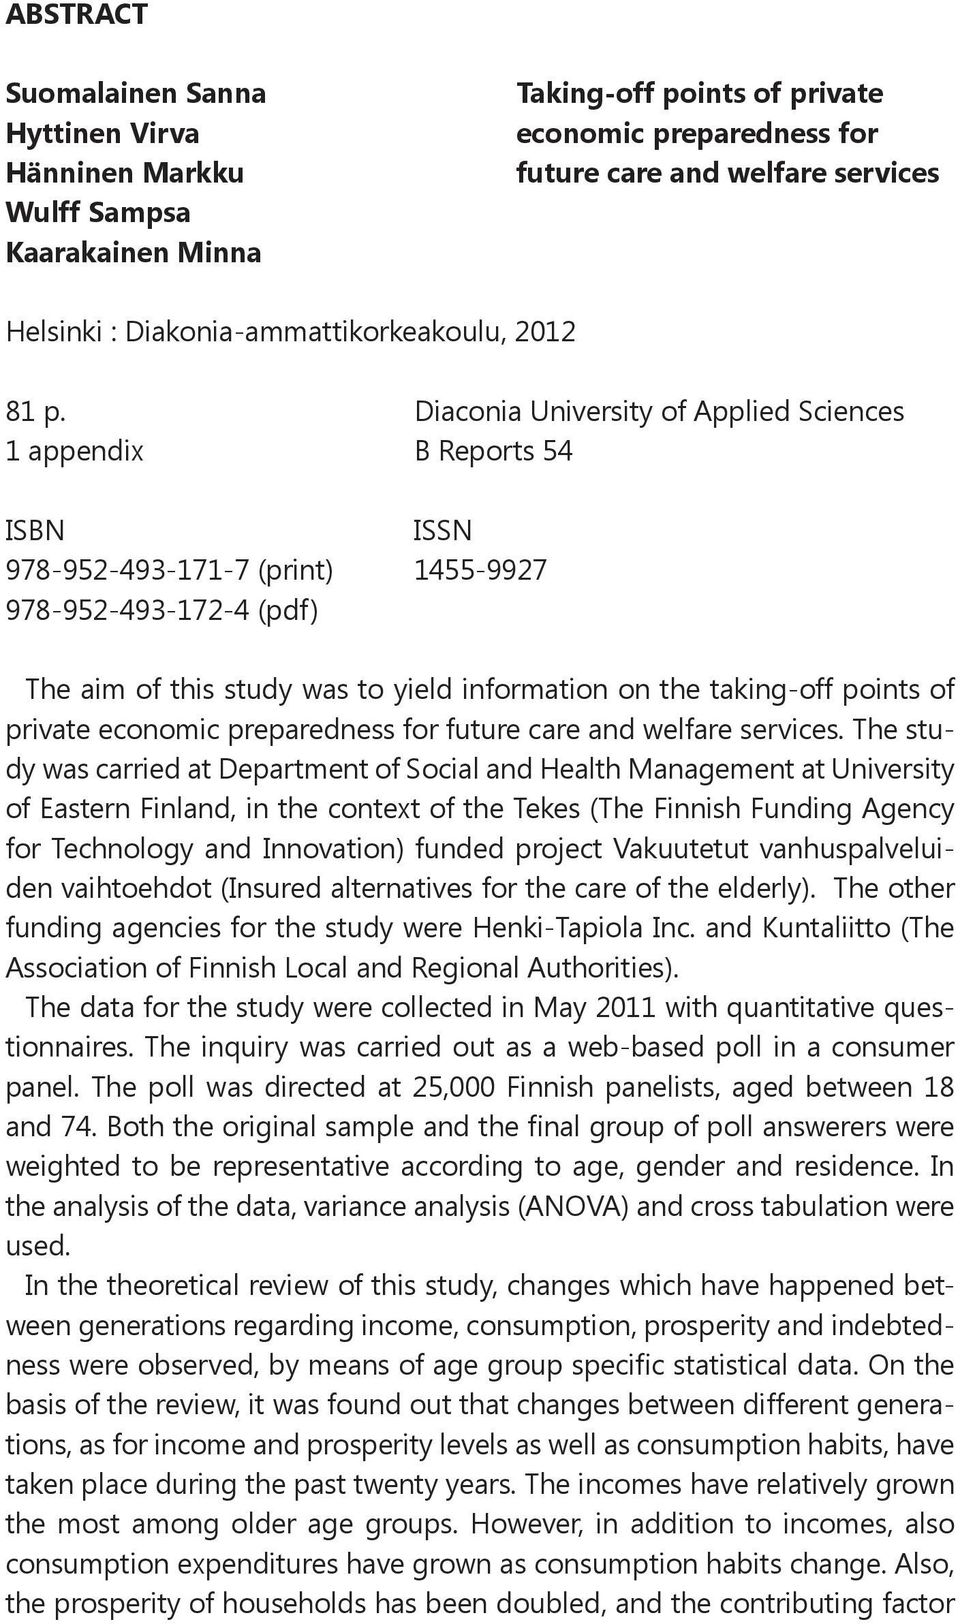 Diaconia University of Applied Sciences 1 appendix B Reports 54 ISBN ISSN 978-952-493-171-7 (print) 1455-9927 978-952-493-172-4 (pdf) The aim of this study was to yield information on the taking-off